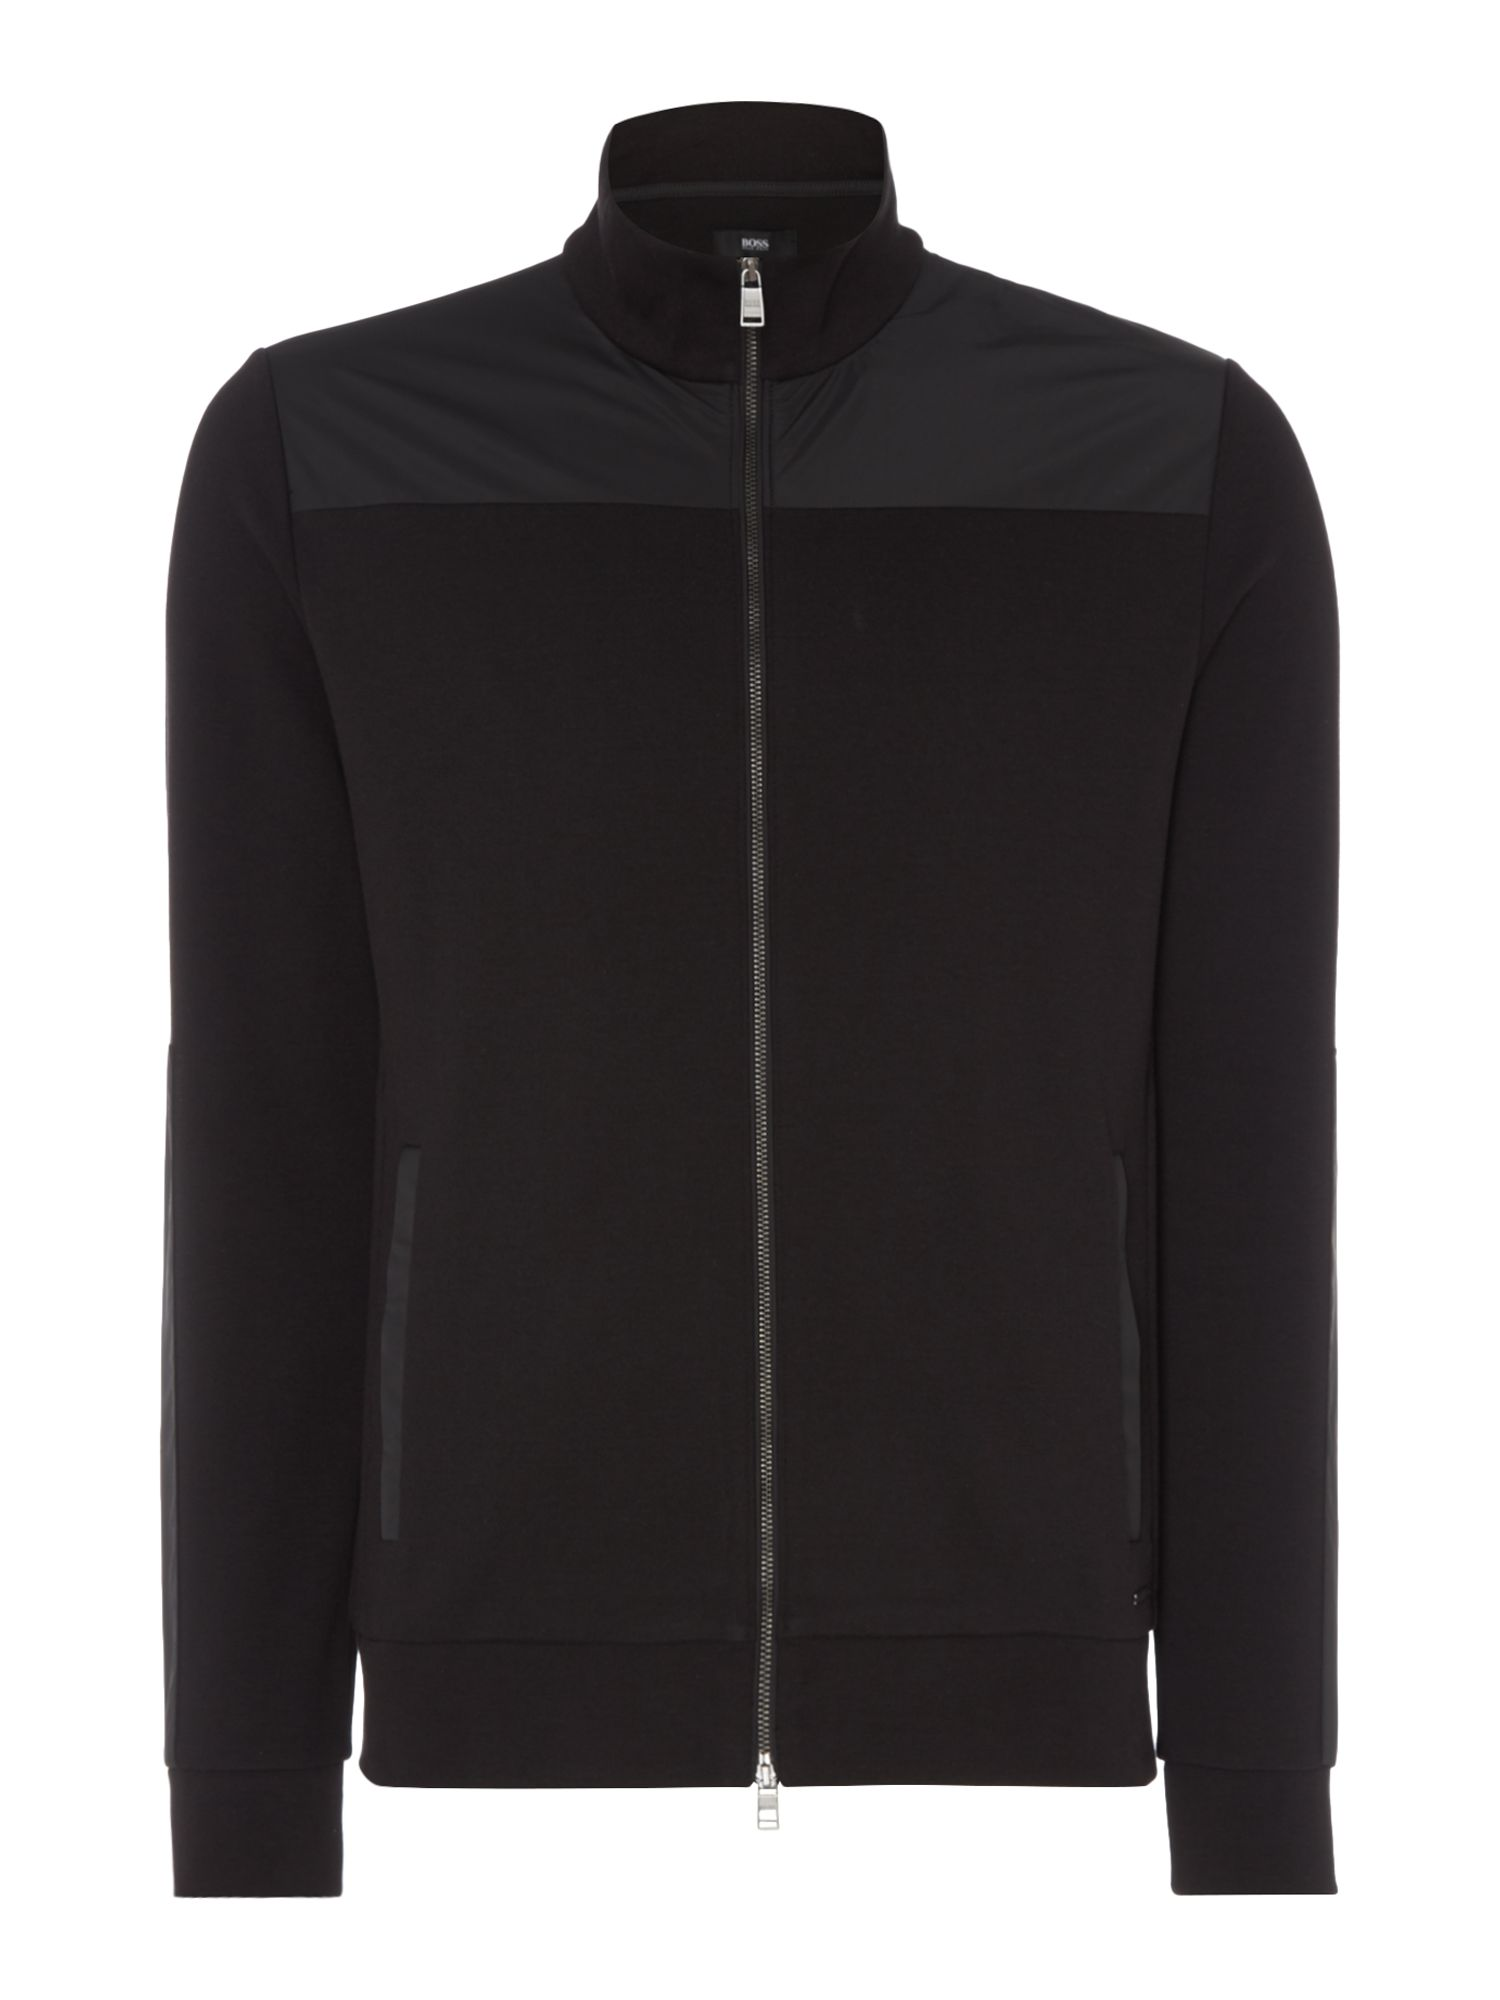 Men's Hugo Boss Shepherd 09 mixed media zip up sweatshirt, Black